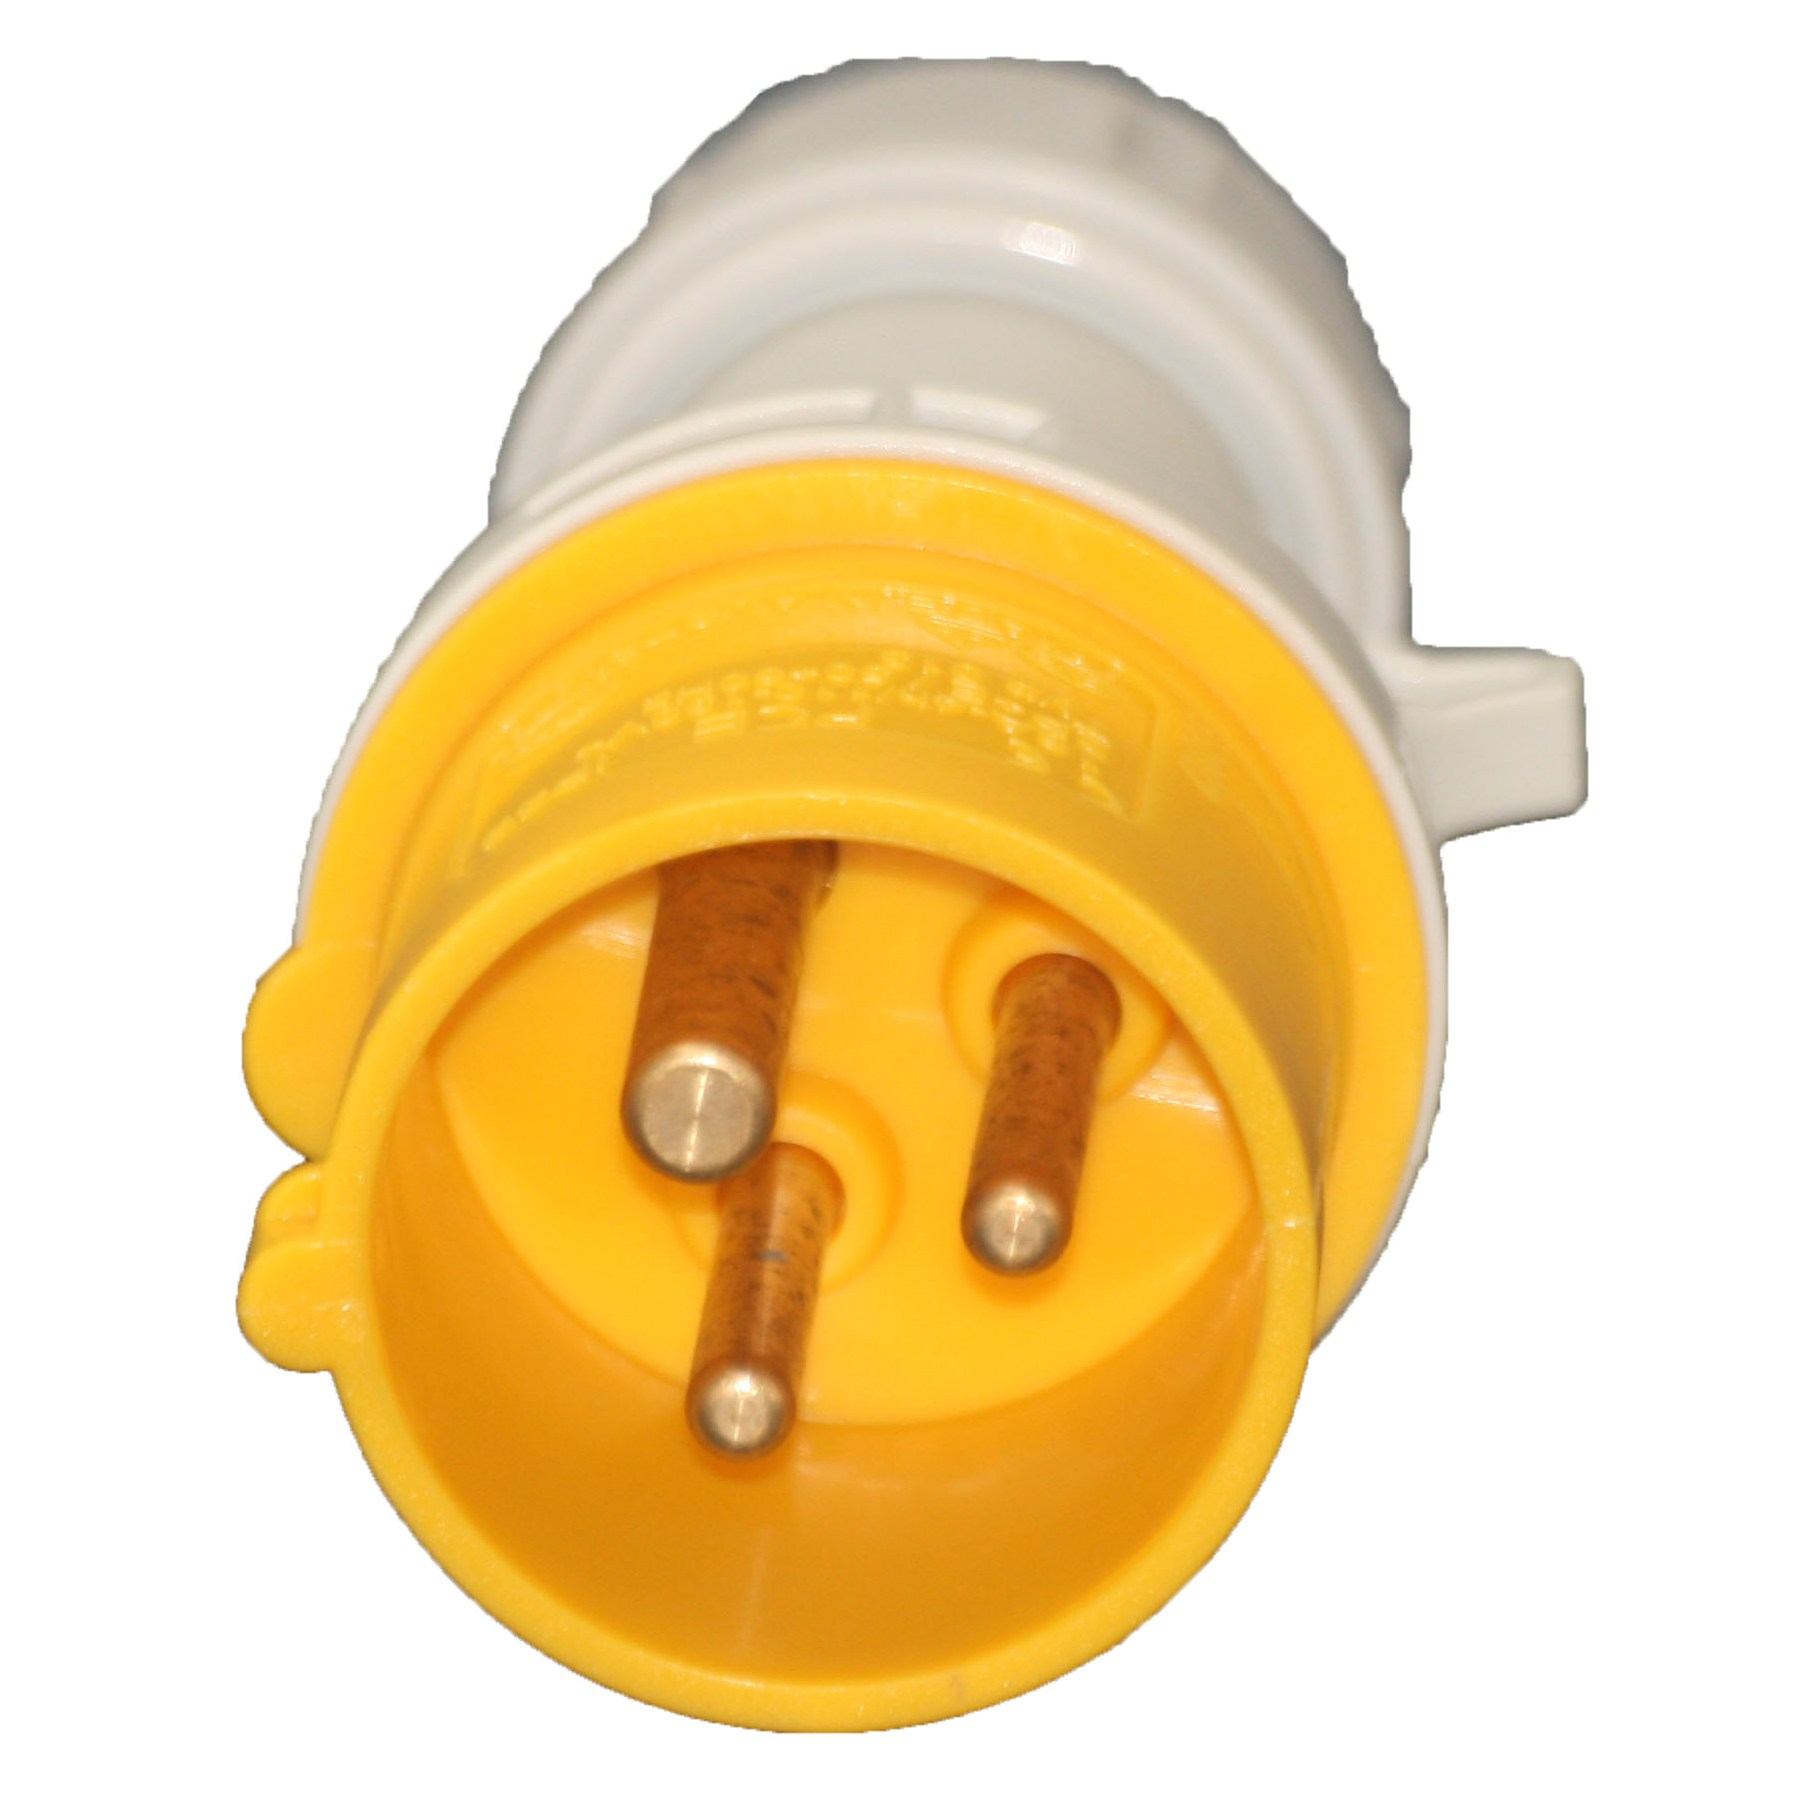 110v Plug Wiring Uk Product Diagrams Diagram Yellow Site Transformer Top Quick Fit 16a 2p E 110